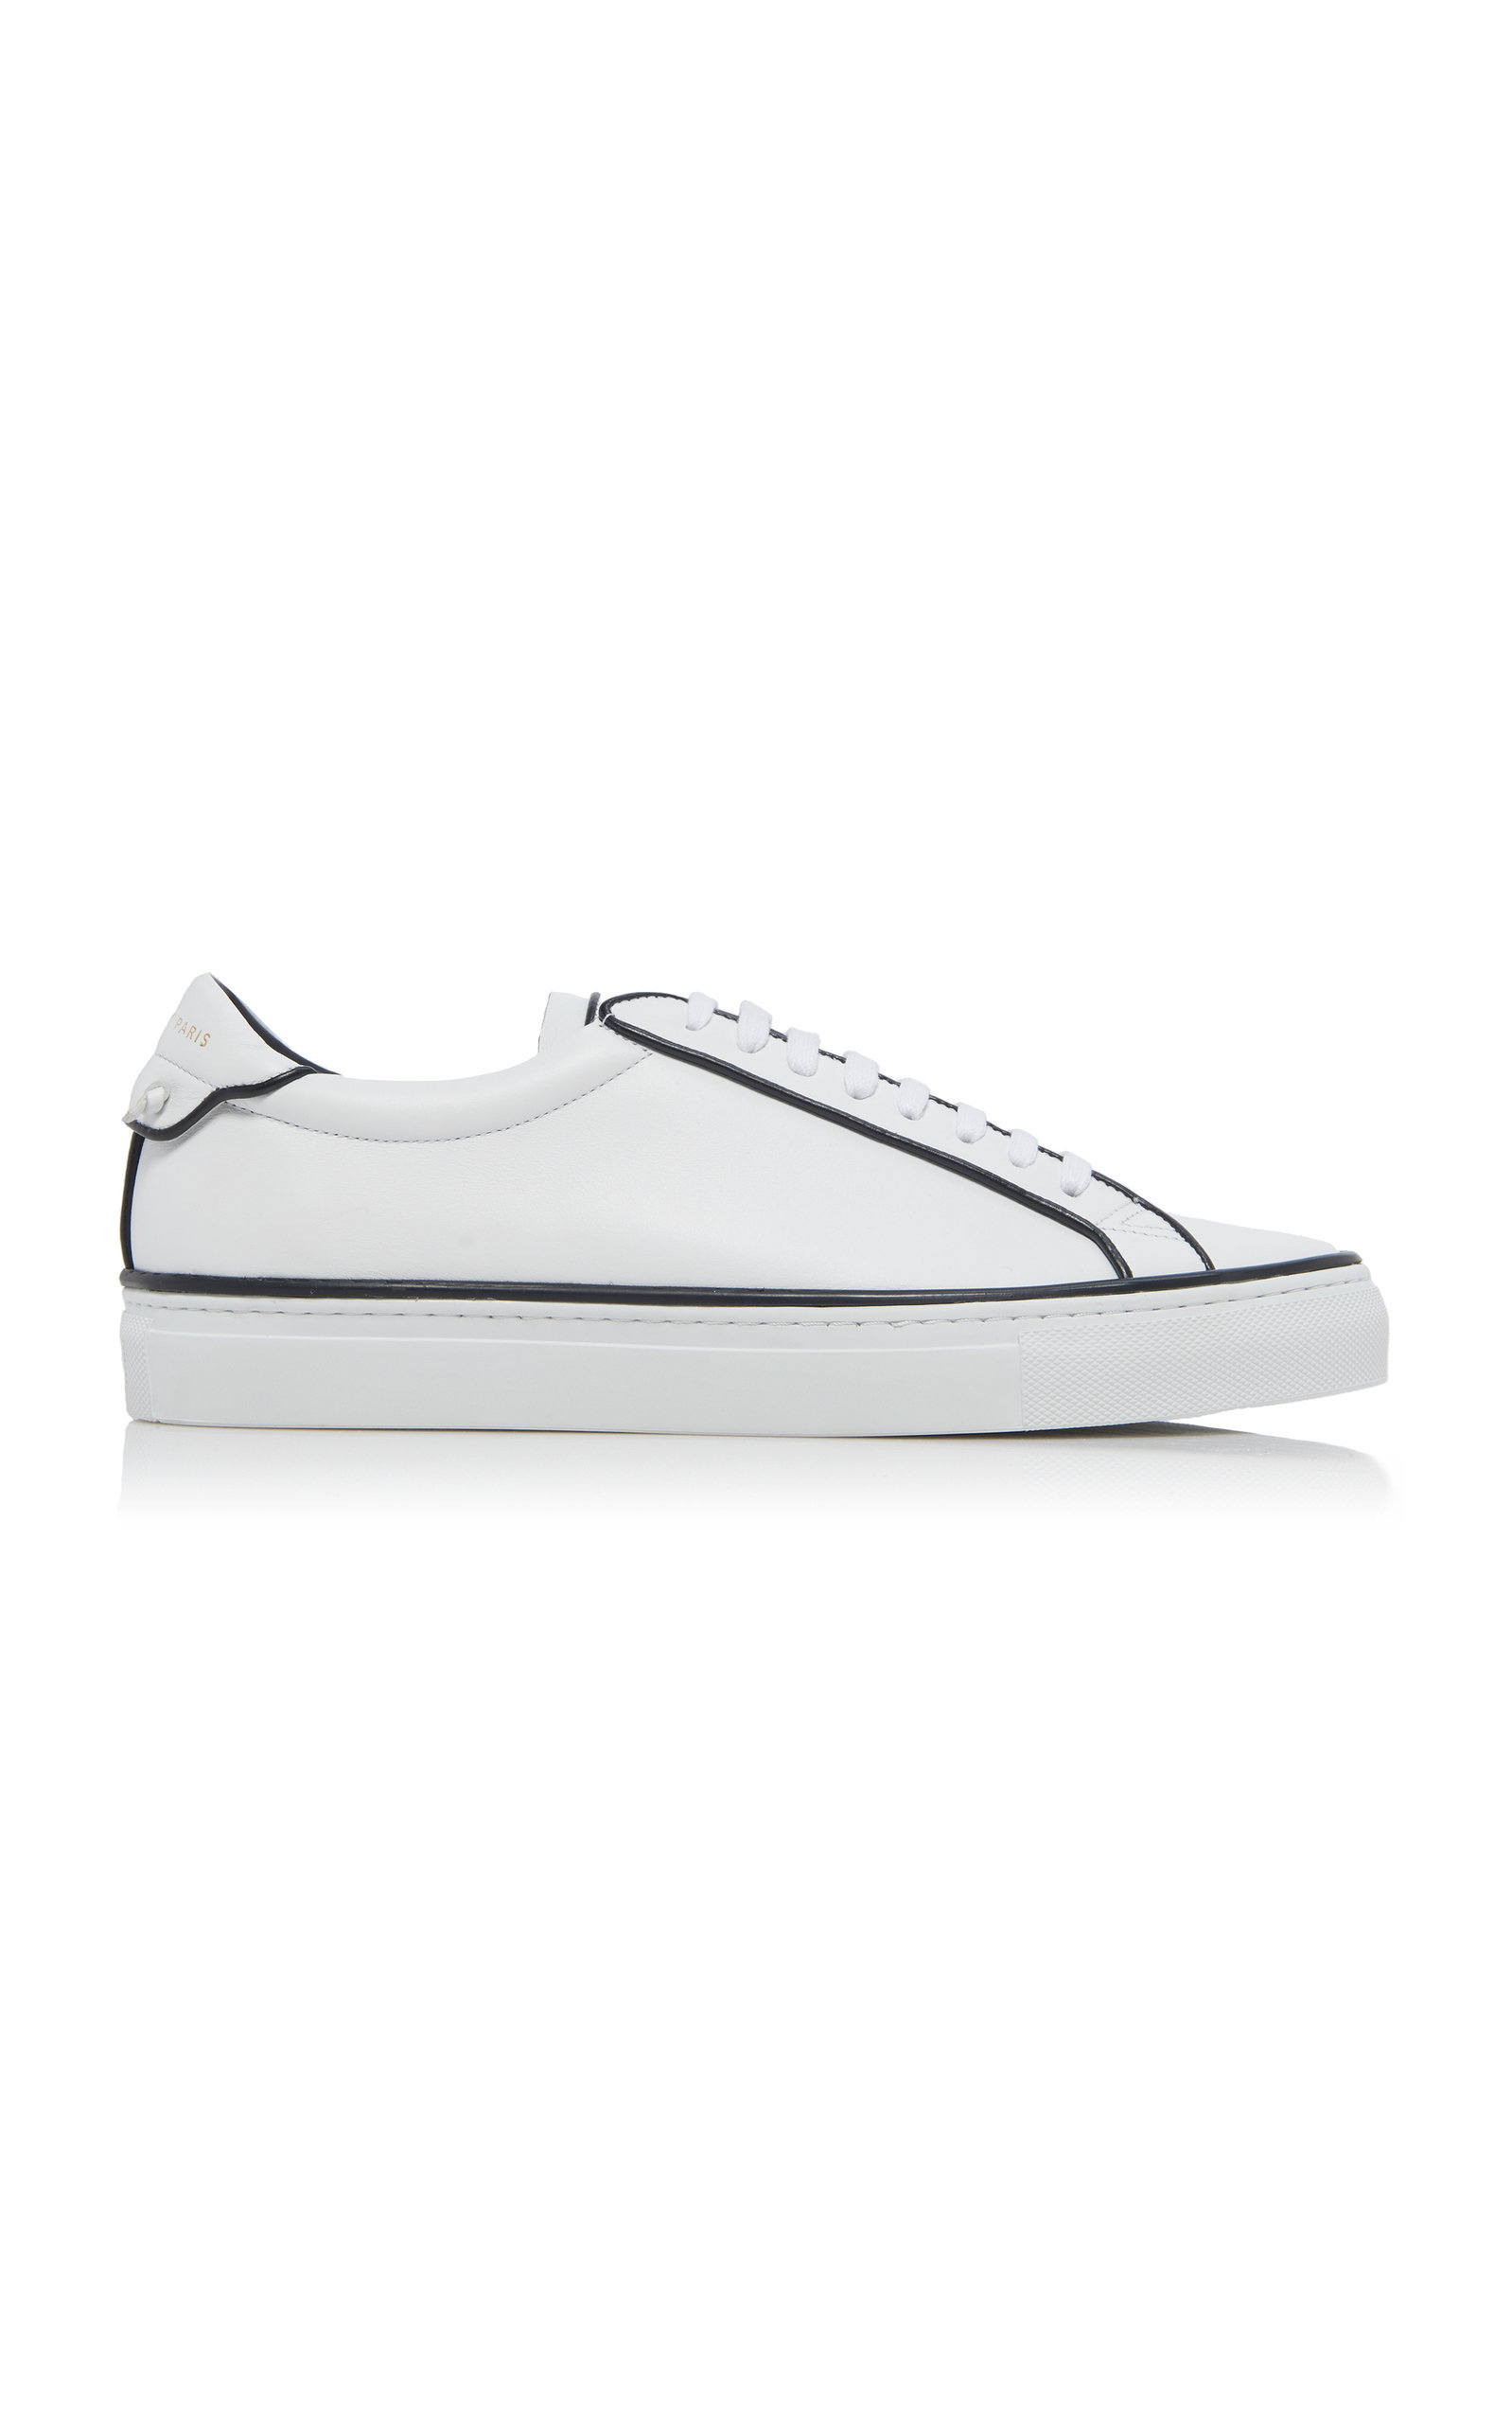 Givenchy Urban Street Leather Sneakers In Black/White